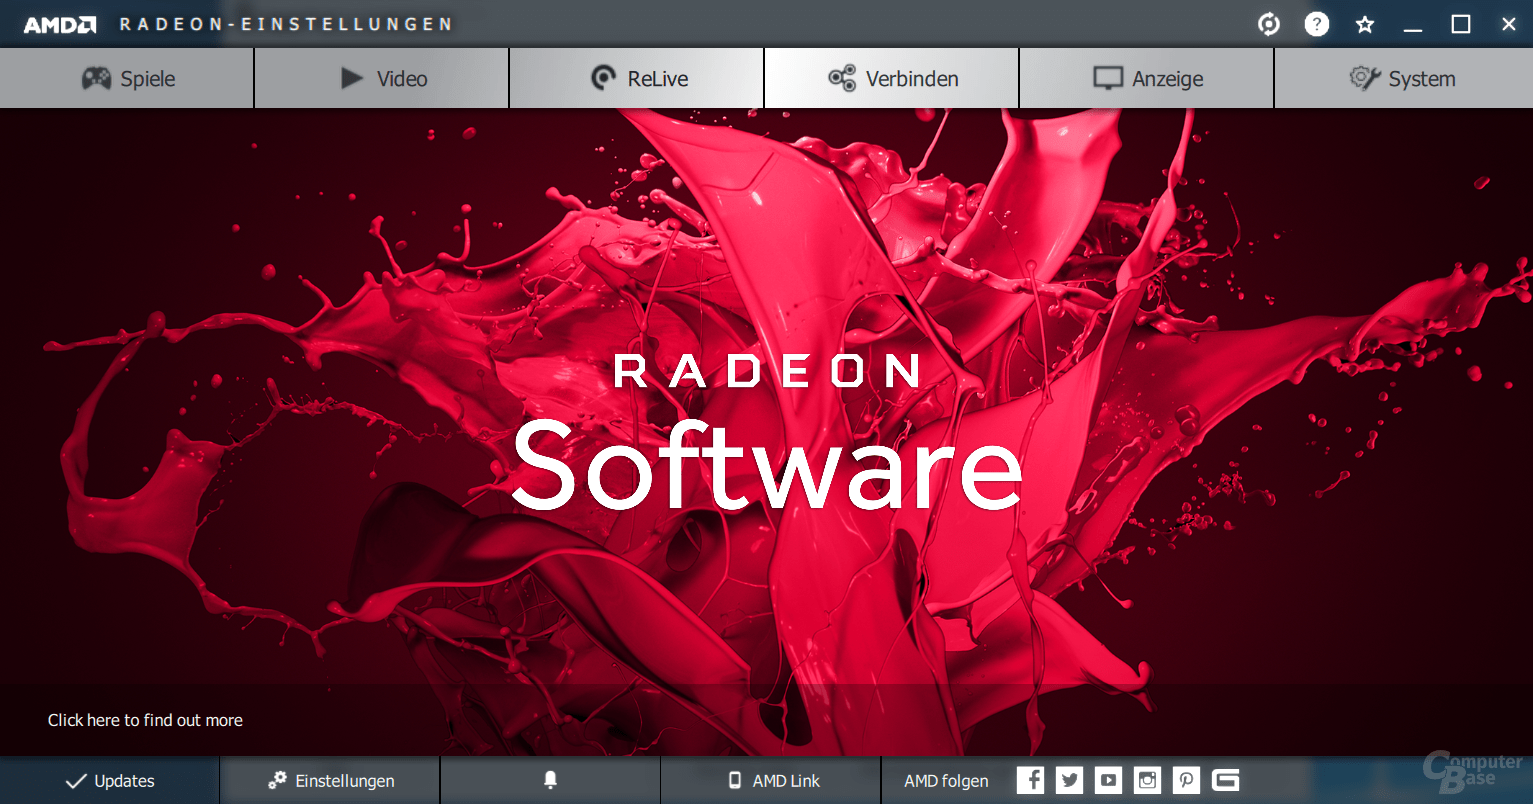 AMD Adrenalin 2019 (18.12.2) im Test